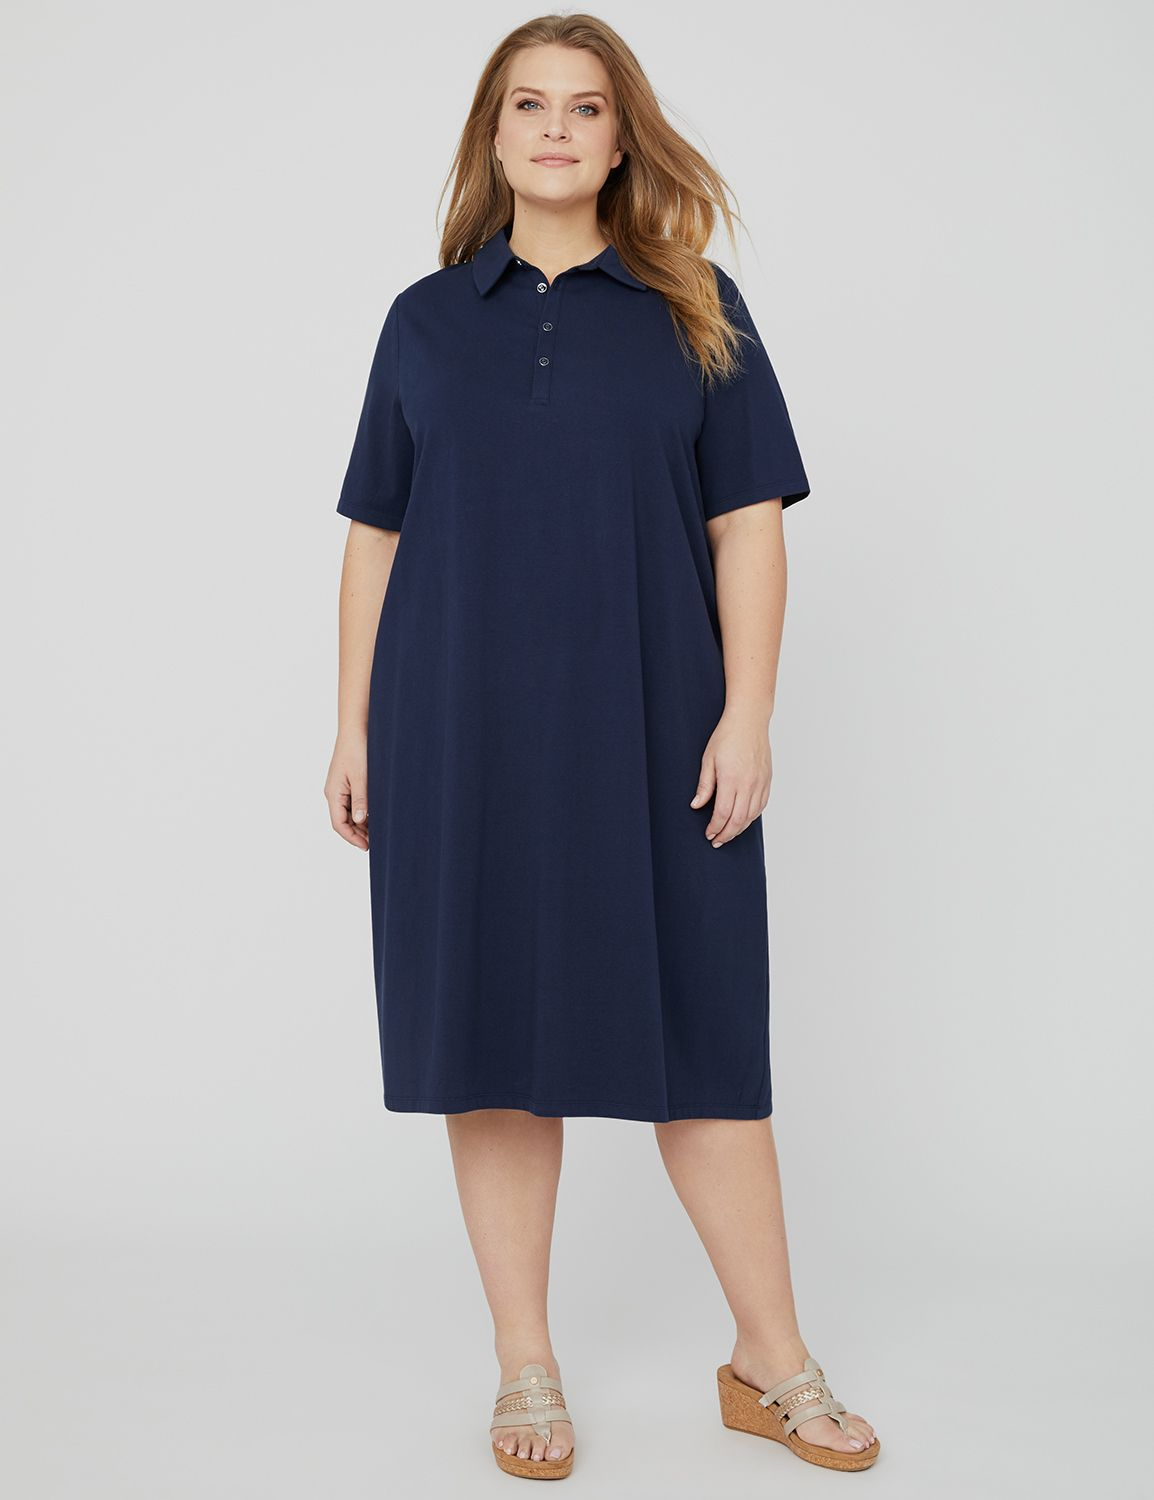 Suprema Polo Dress 1090899 Suprema Polo Dress MP-300105757